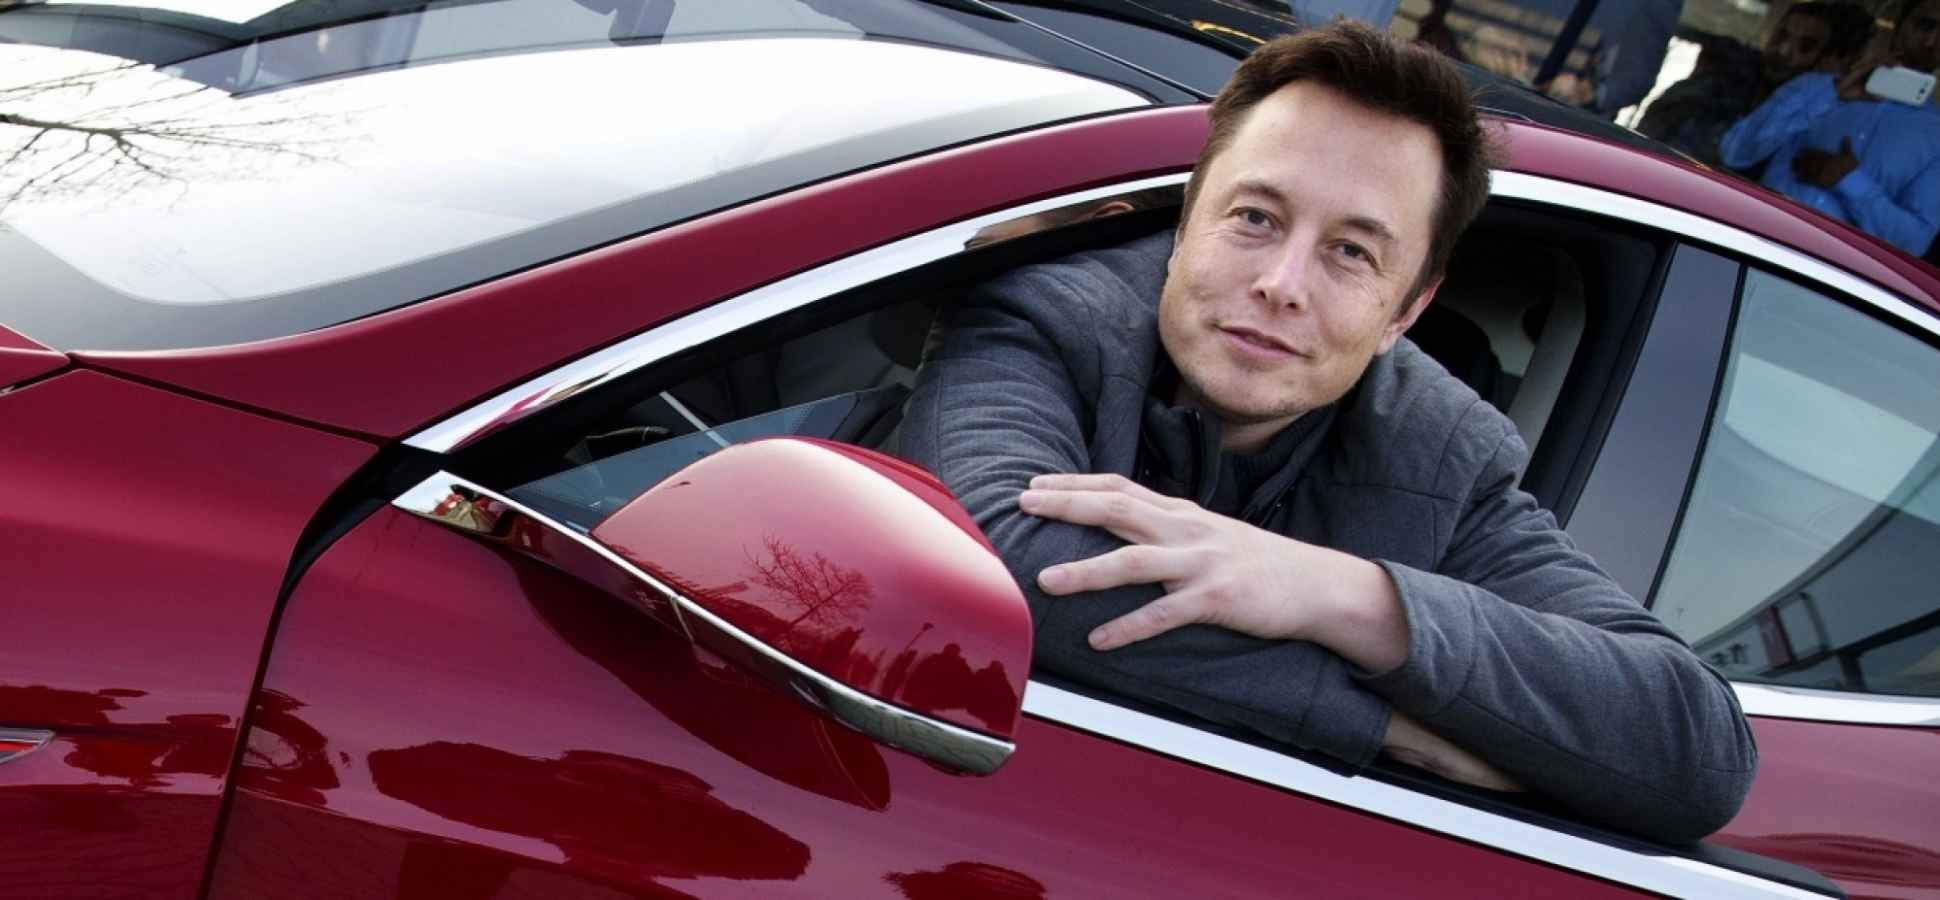 This Elon Musk Blog Post From 2006 Shows Exactly Why He's So Successful